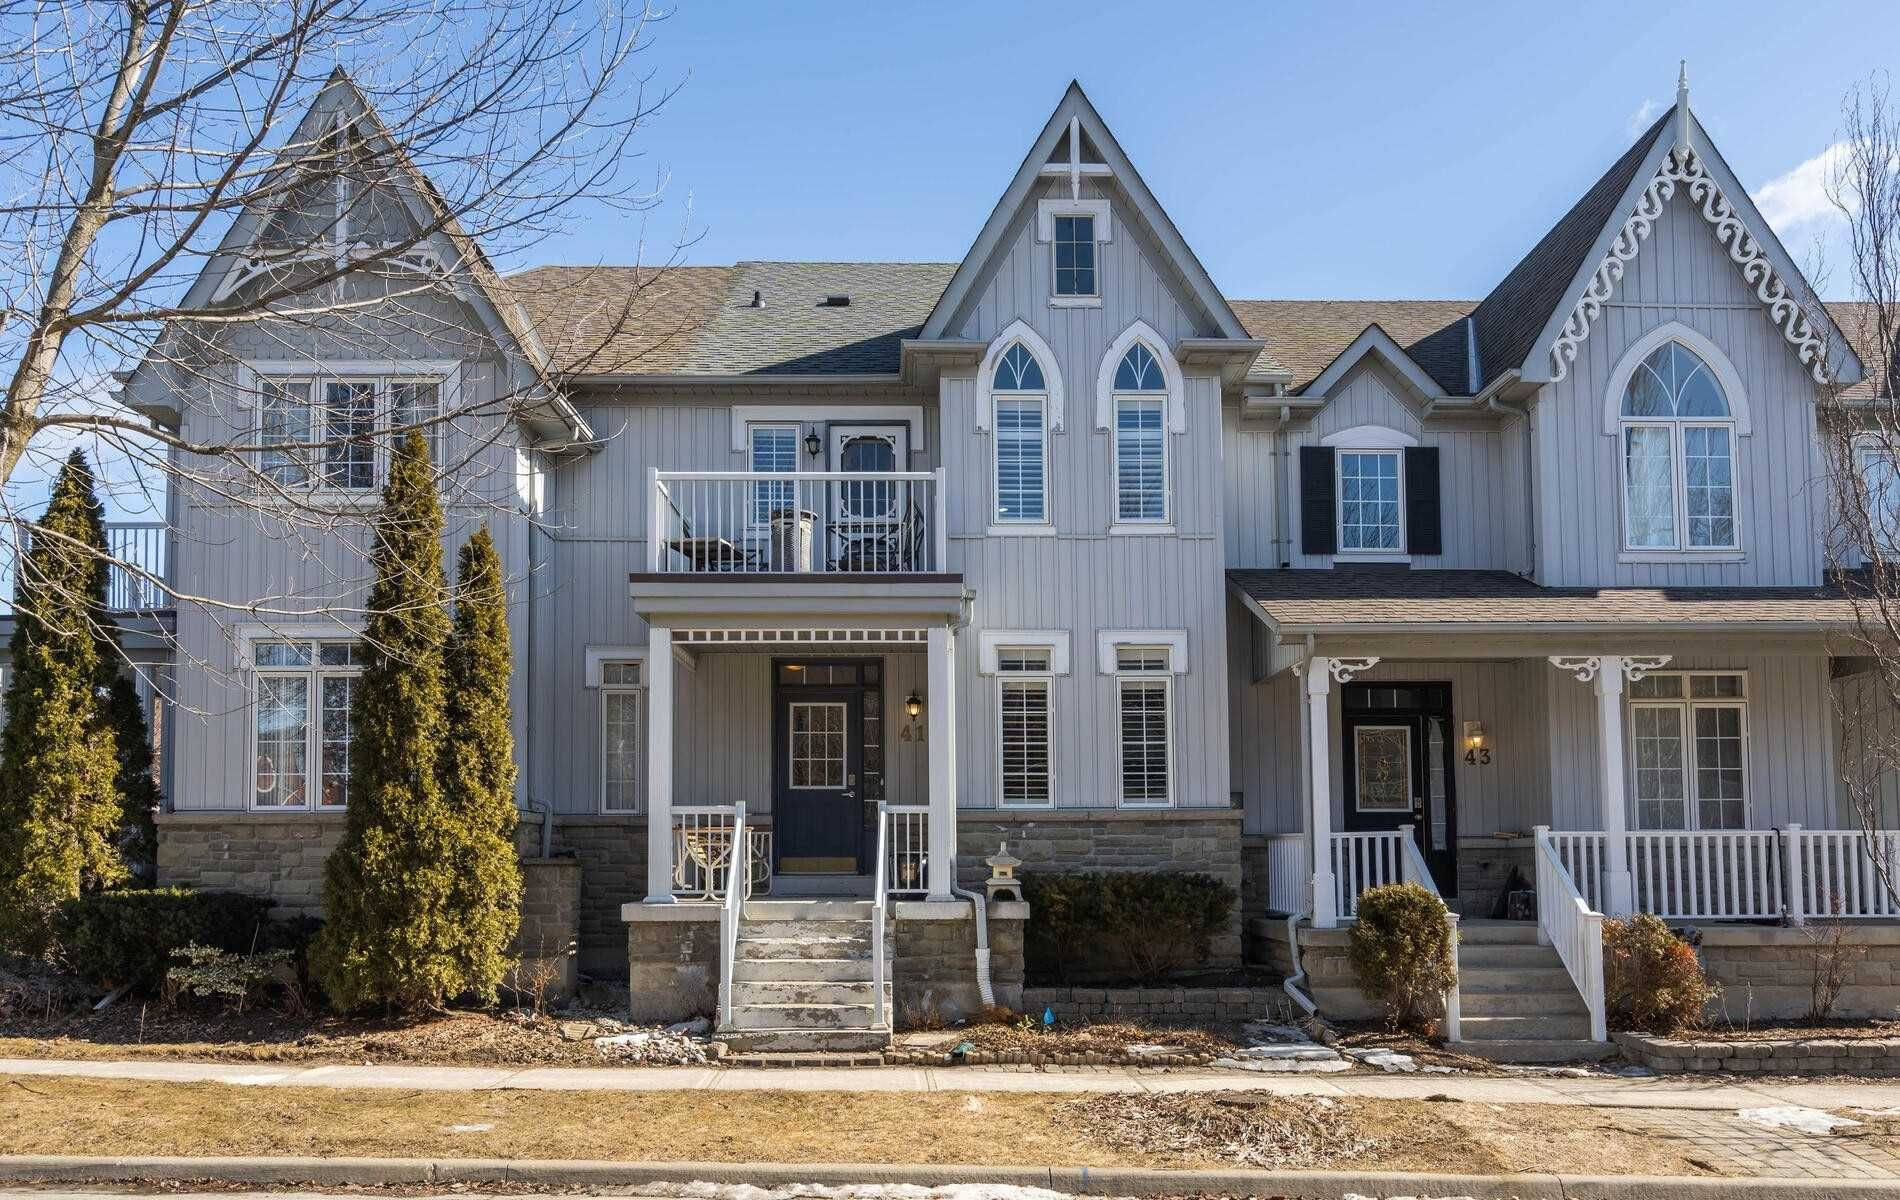 Main Photo: 41 Dancer's Drive in Markham: Angus Glen House (2-Storey) for sale : MLS®# N5140327